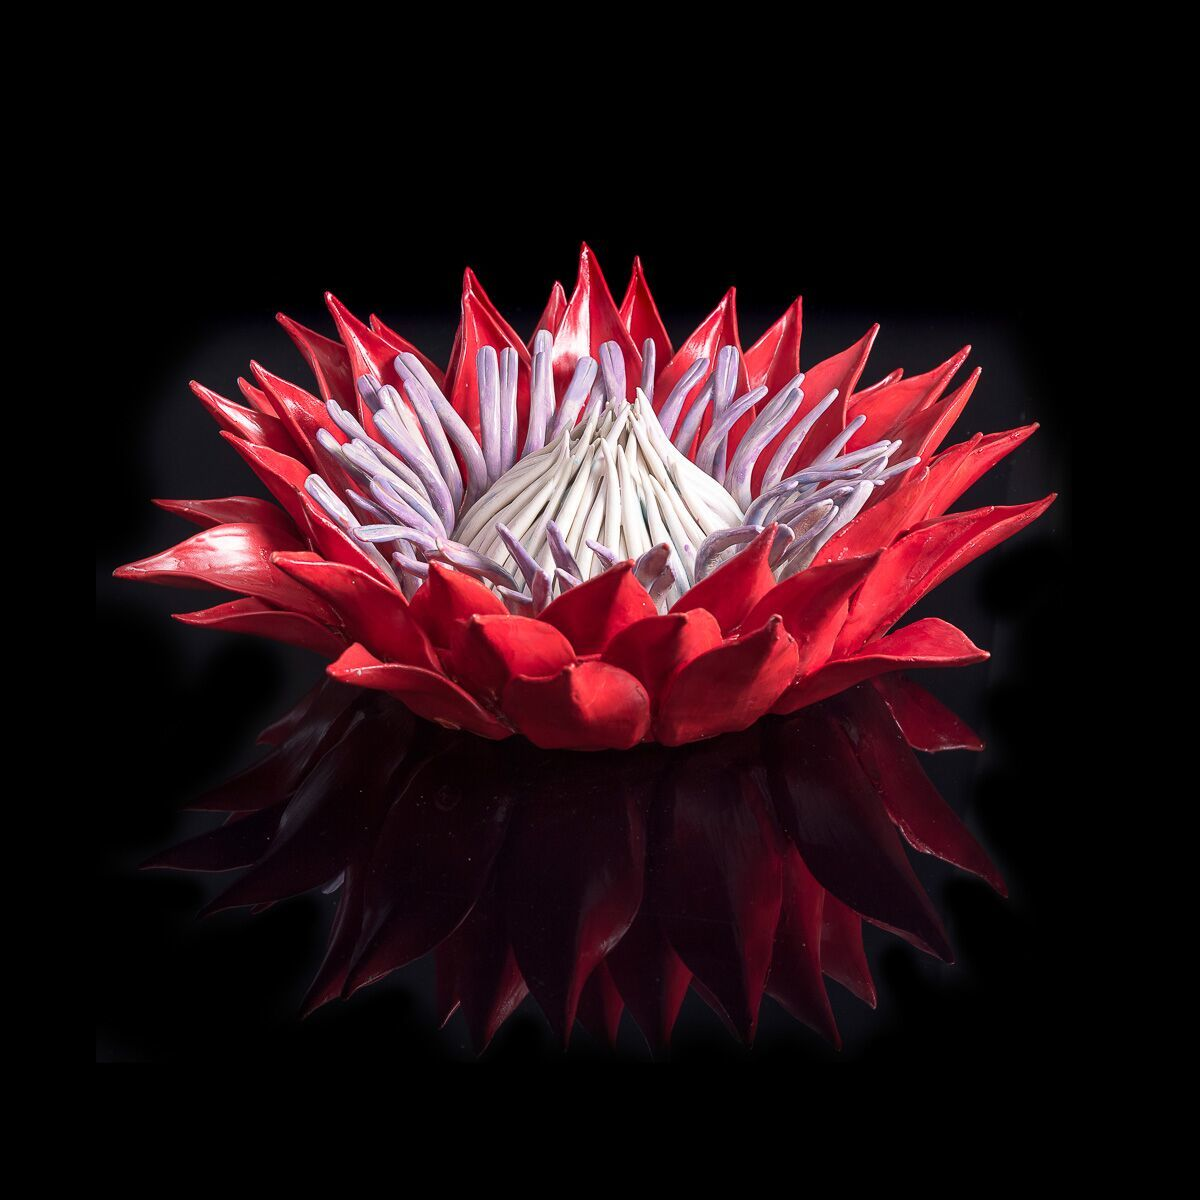 "<span class=""link fancybox-details-link""><a href=""/artists/51-frances-doherty/works/2152-frances-doherty-red-and-lilac-protea-with-blue-glass/"">View Detail Page</a></span><div class=""artist""><strong>Frances Doherty</strong></div> <div class=""title""><em>Red and Lilac Protea with Blue Glass</em></div> <div class=""medium"">Glazed Stoneware </div> <div class=""dimensions"">14h x 42dia. cm</div><div class=""price"">£1,400.00</div><div class=""copyright_line"">Copyright The Artist</div>"